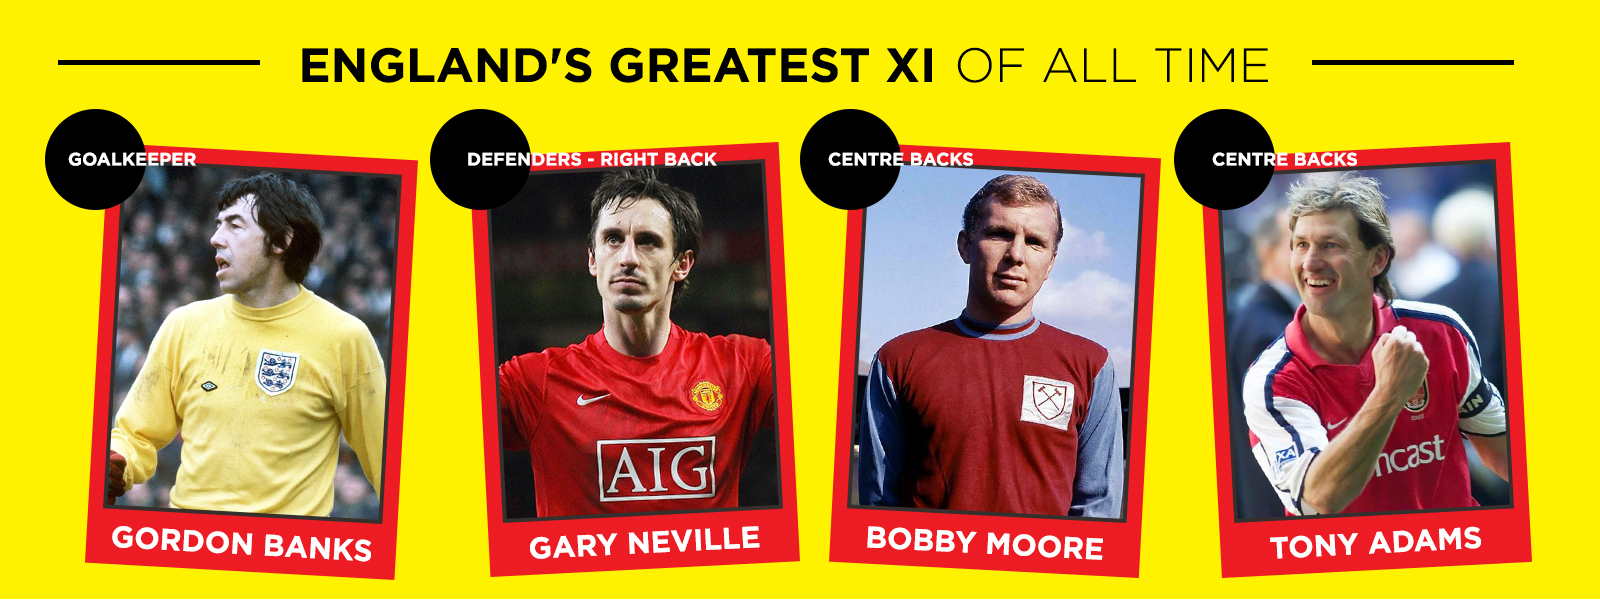 England Greatest XI Of All Time